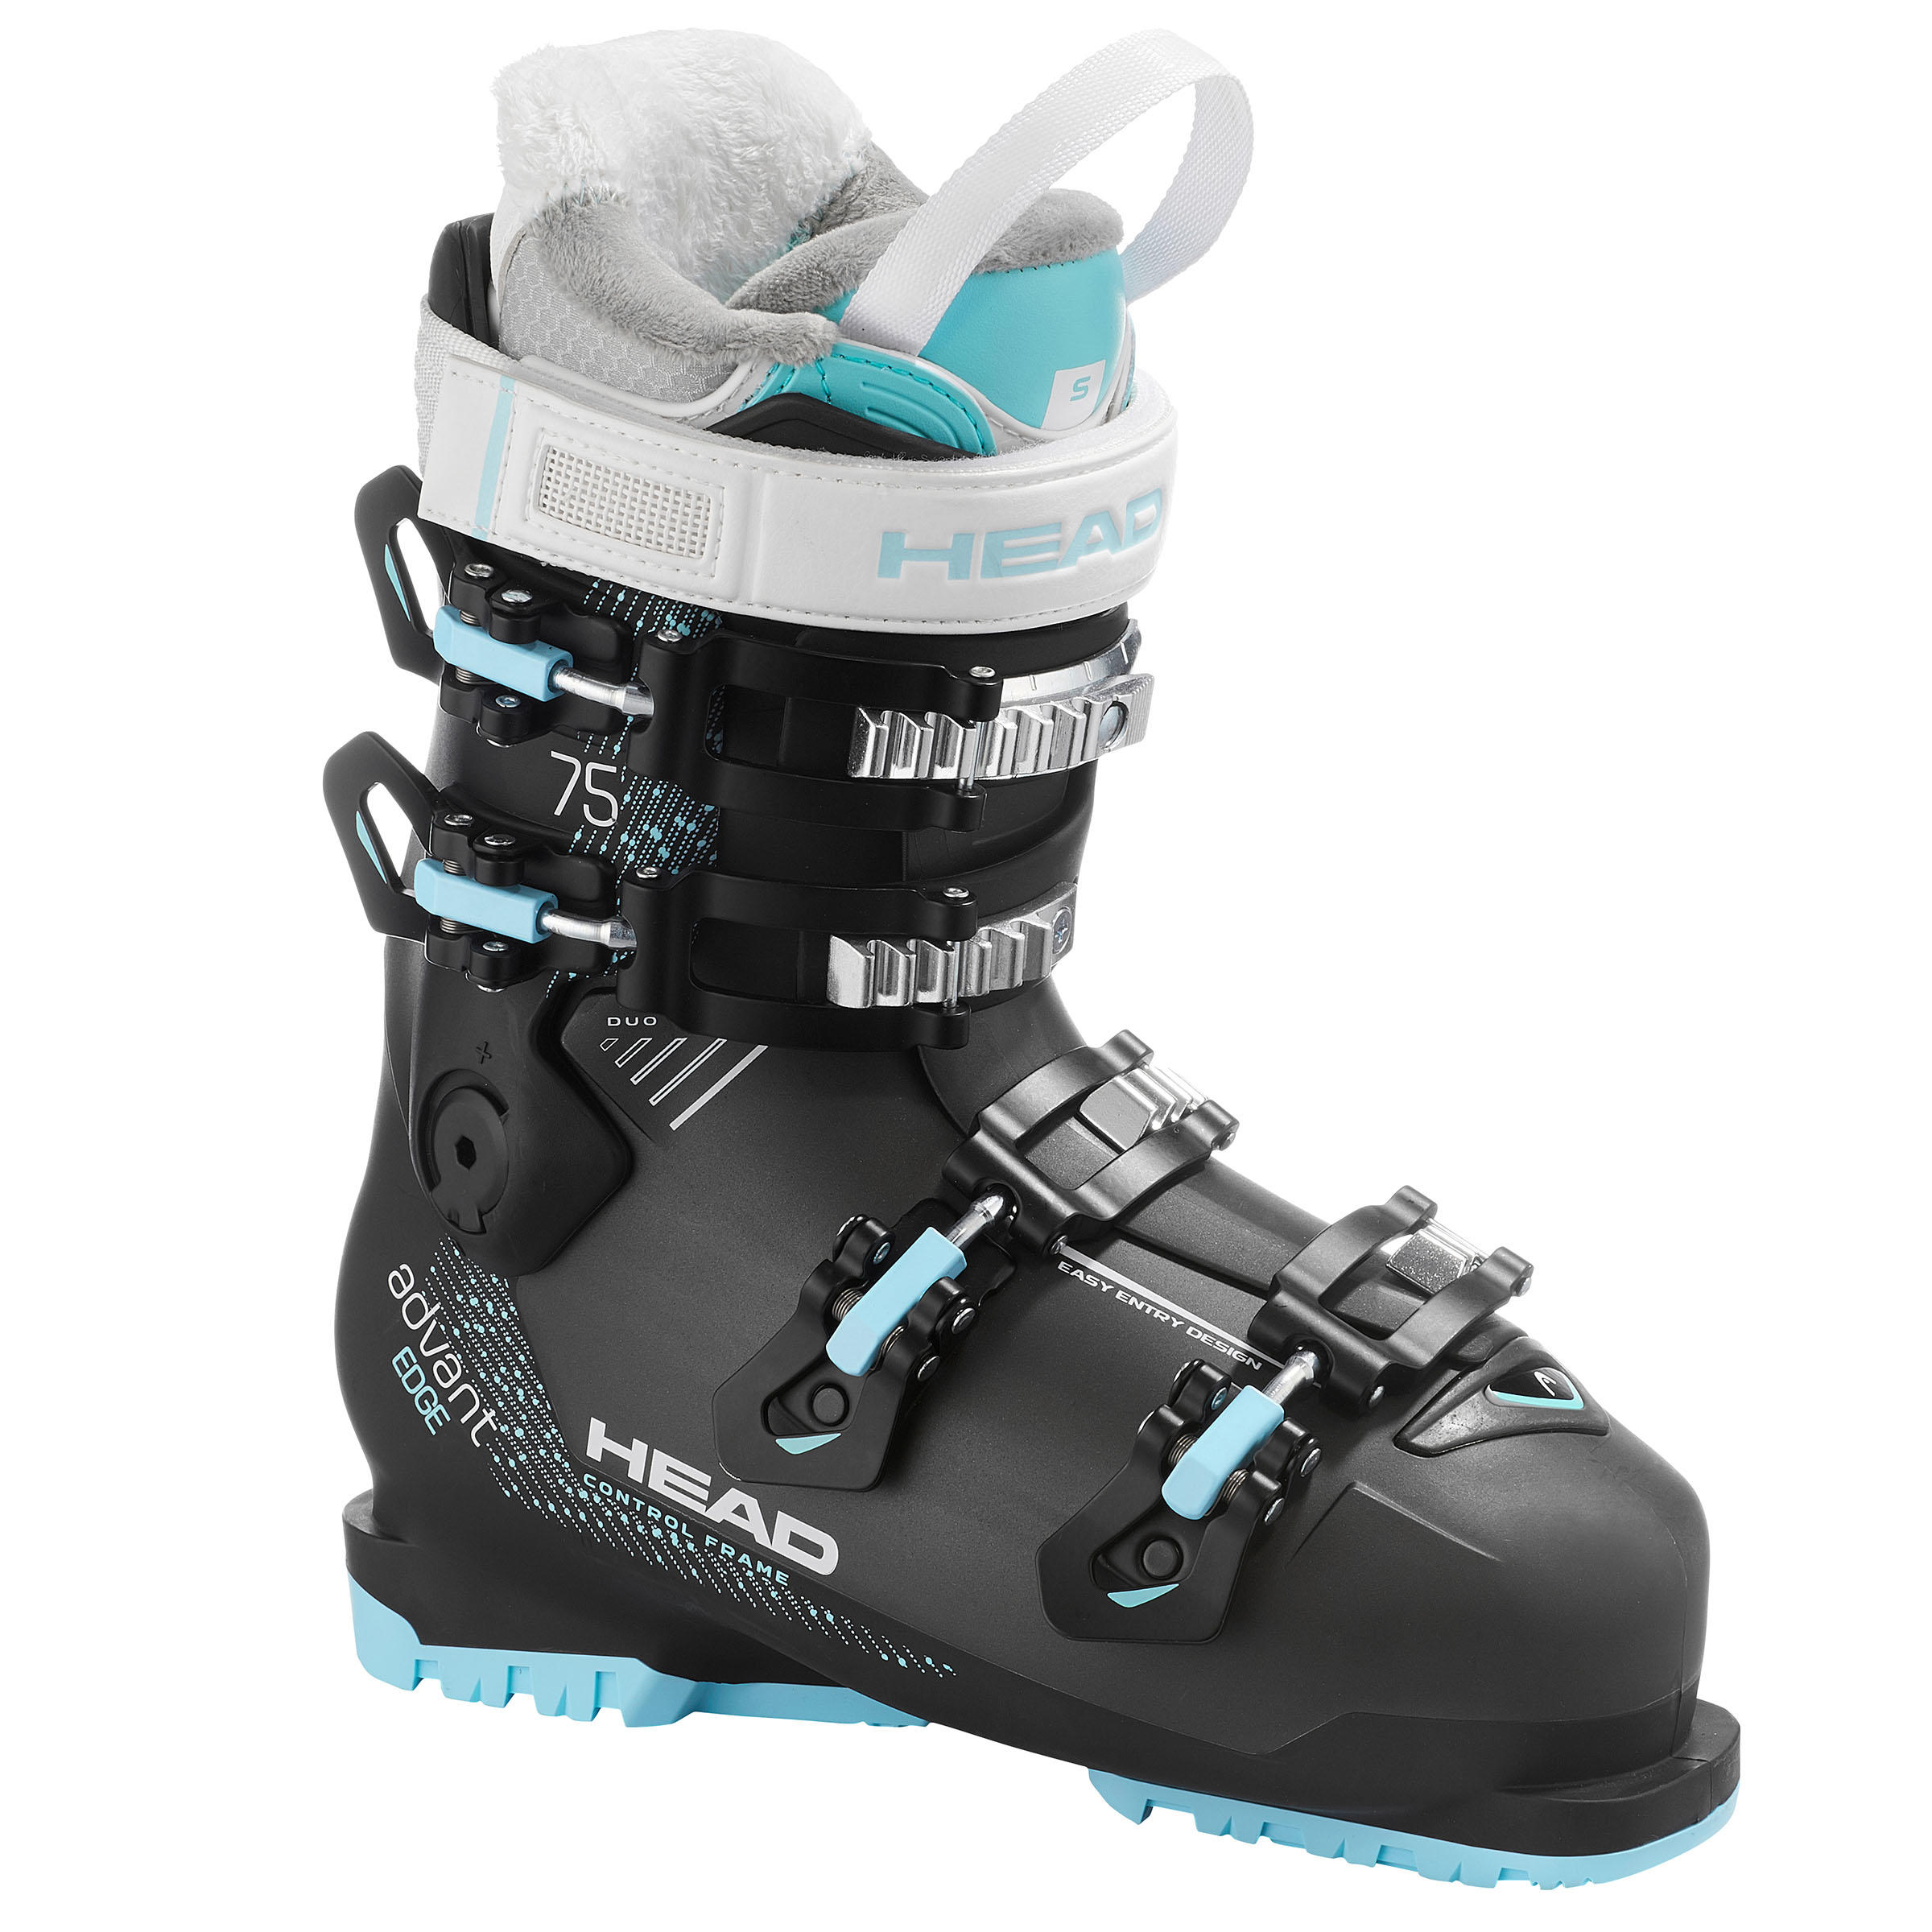 Head Skischoenen voor dames Advant Edge 75 thumbnail